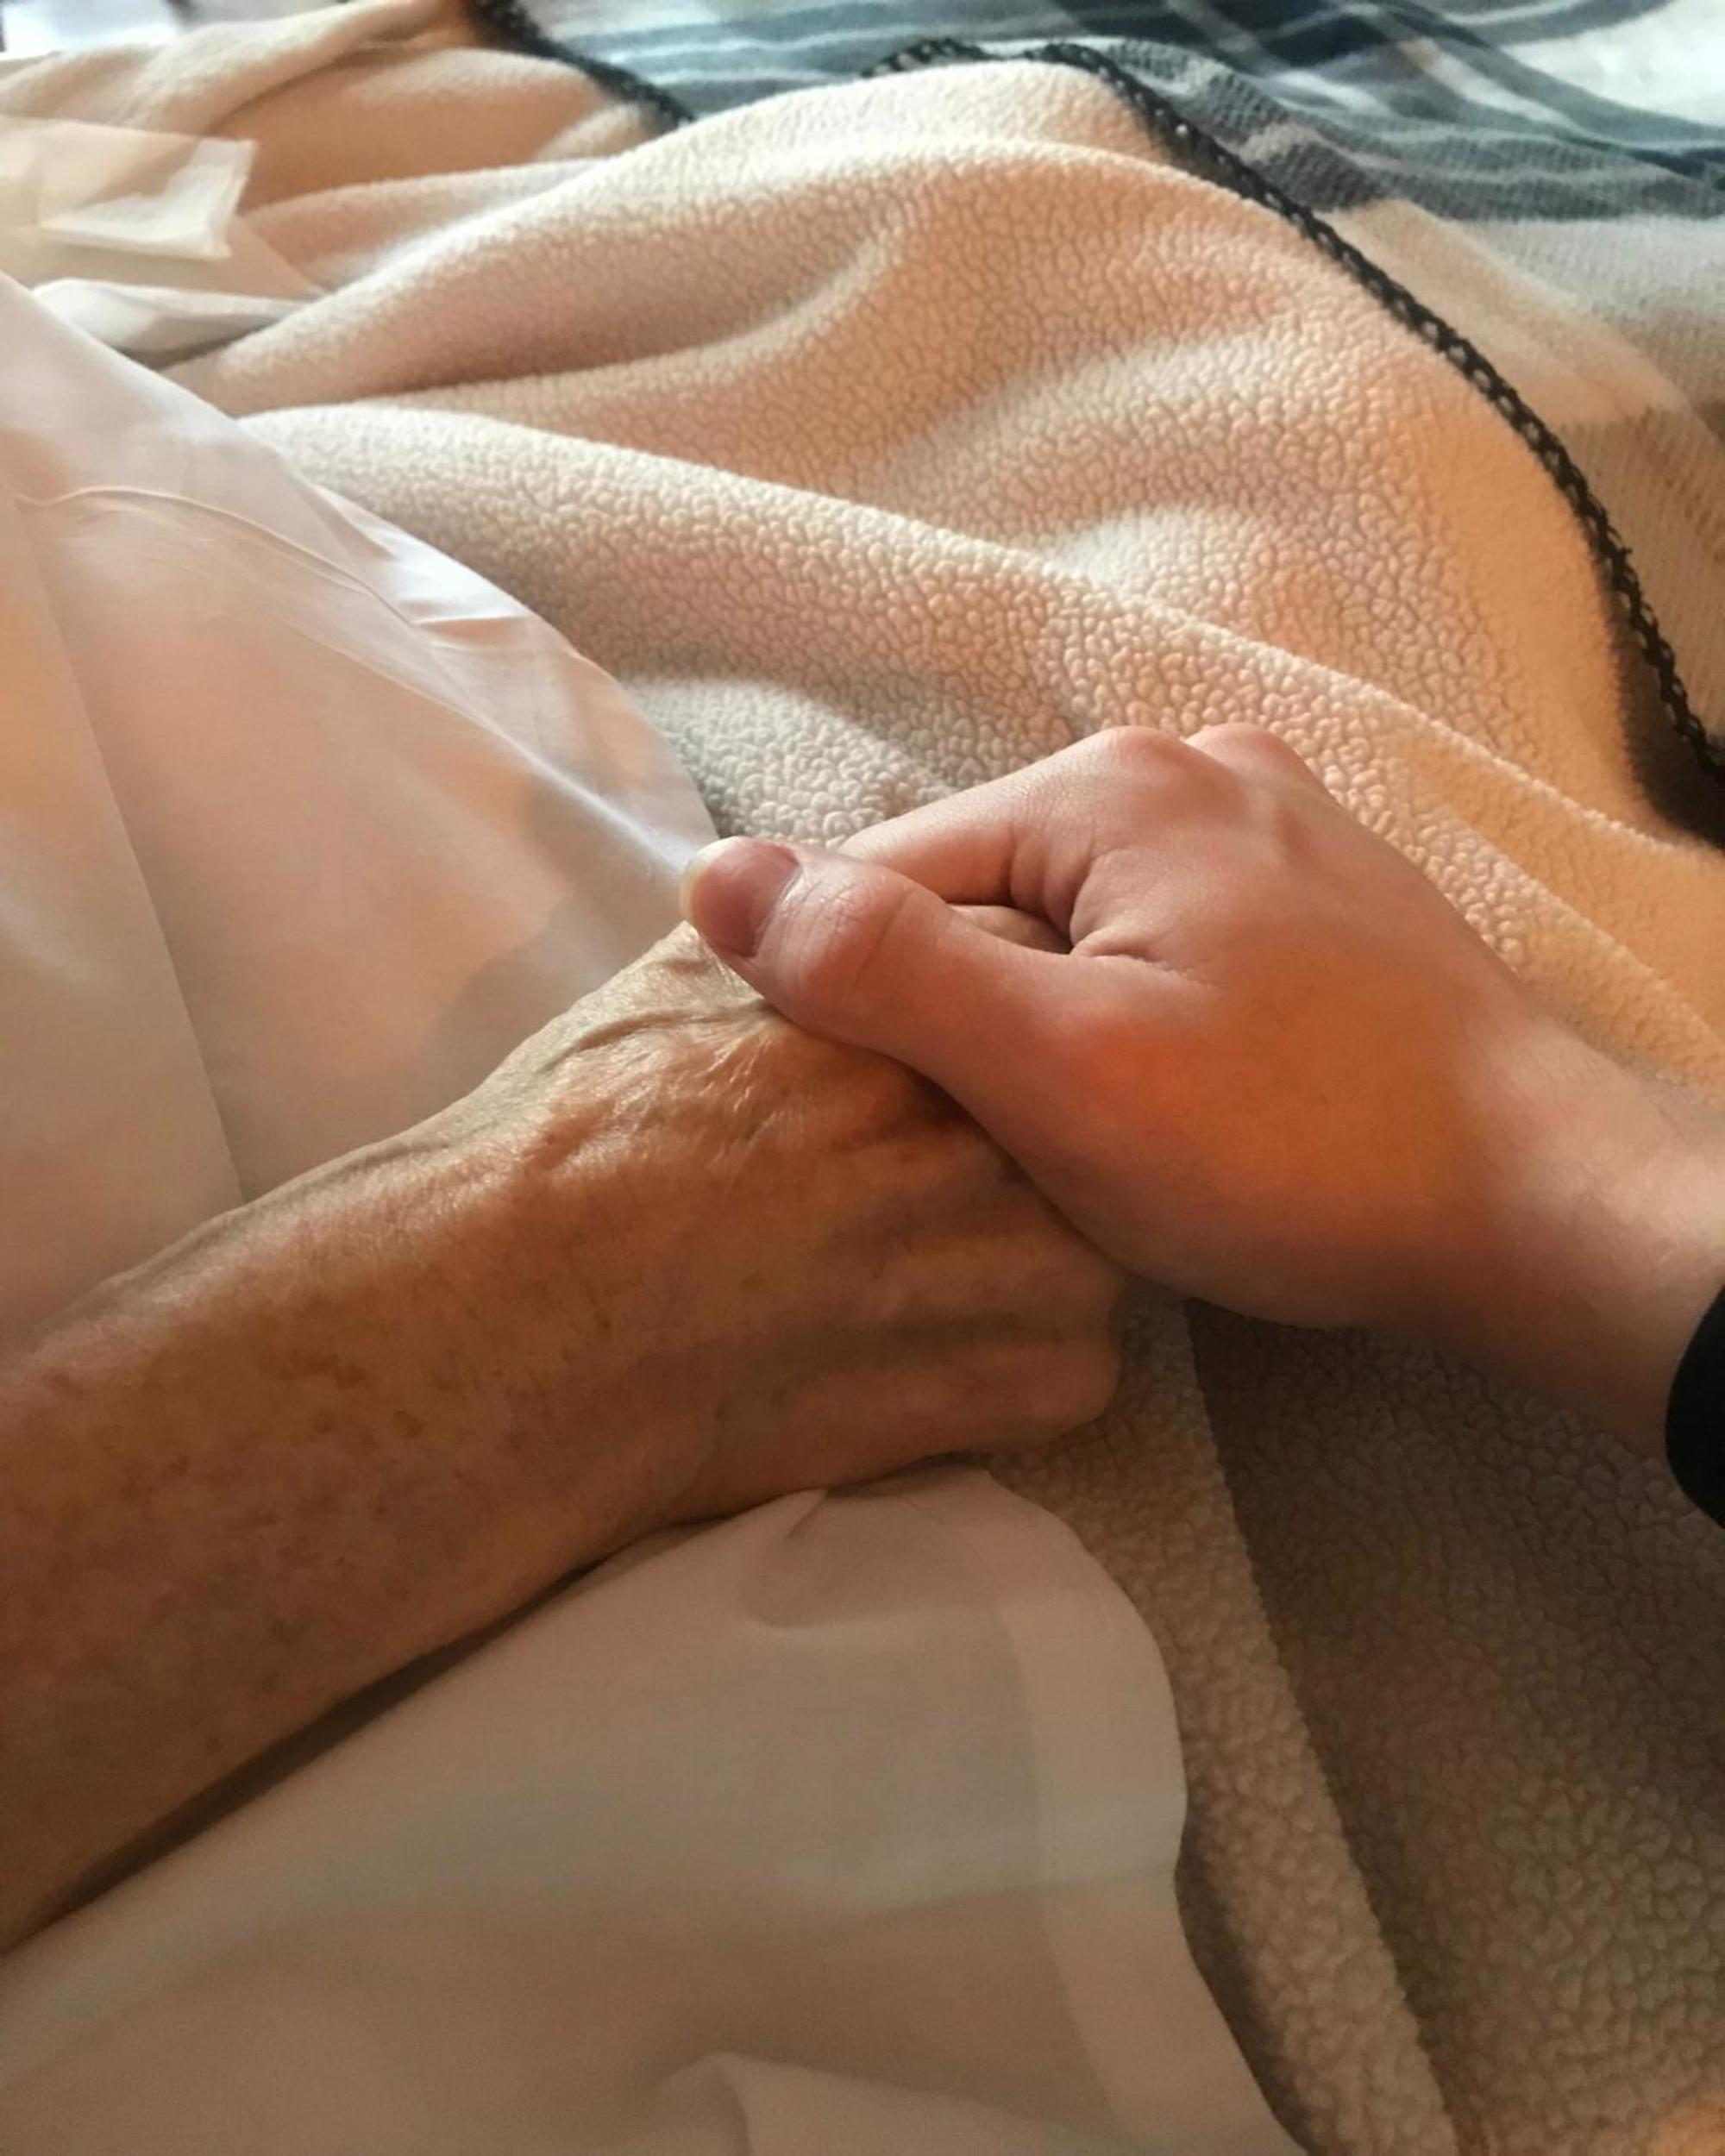 mum-most-sdmired-dying-cancer-grieving